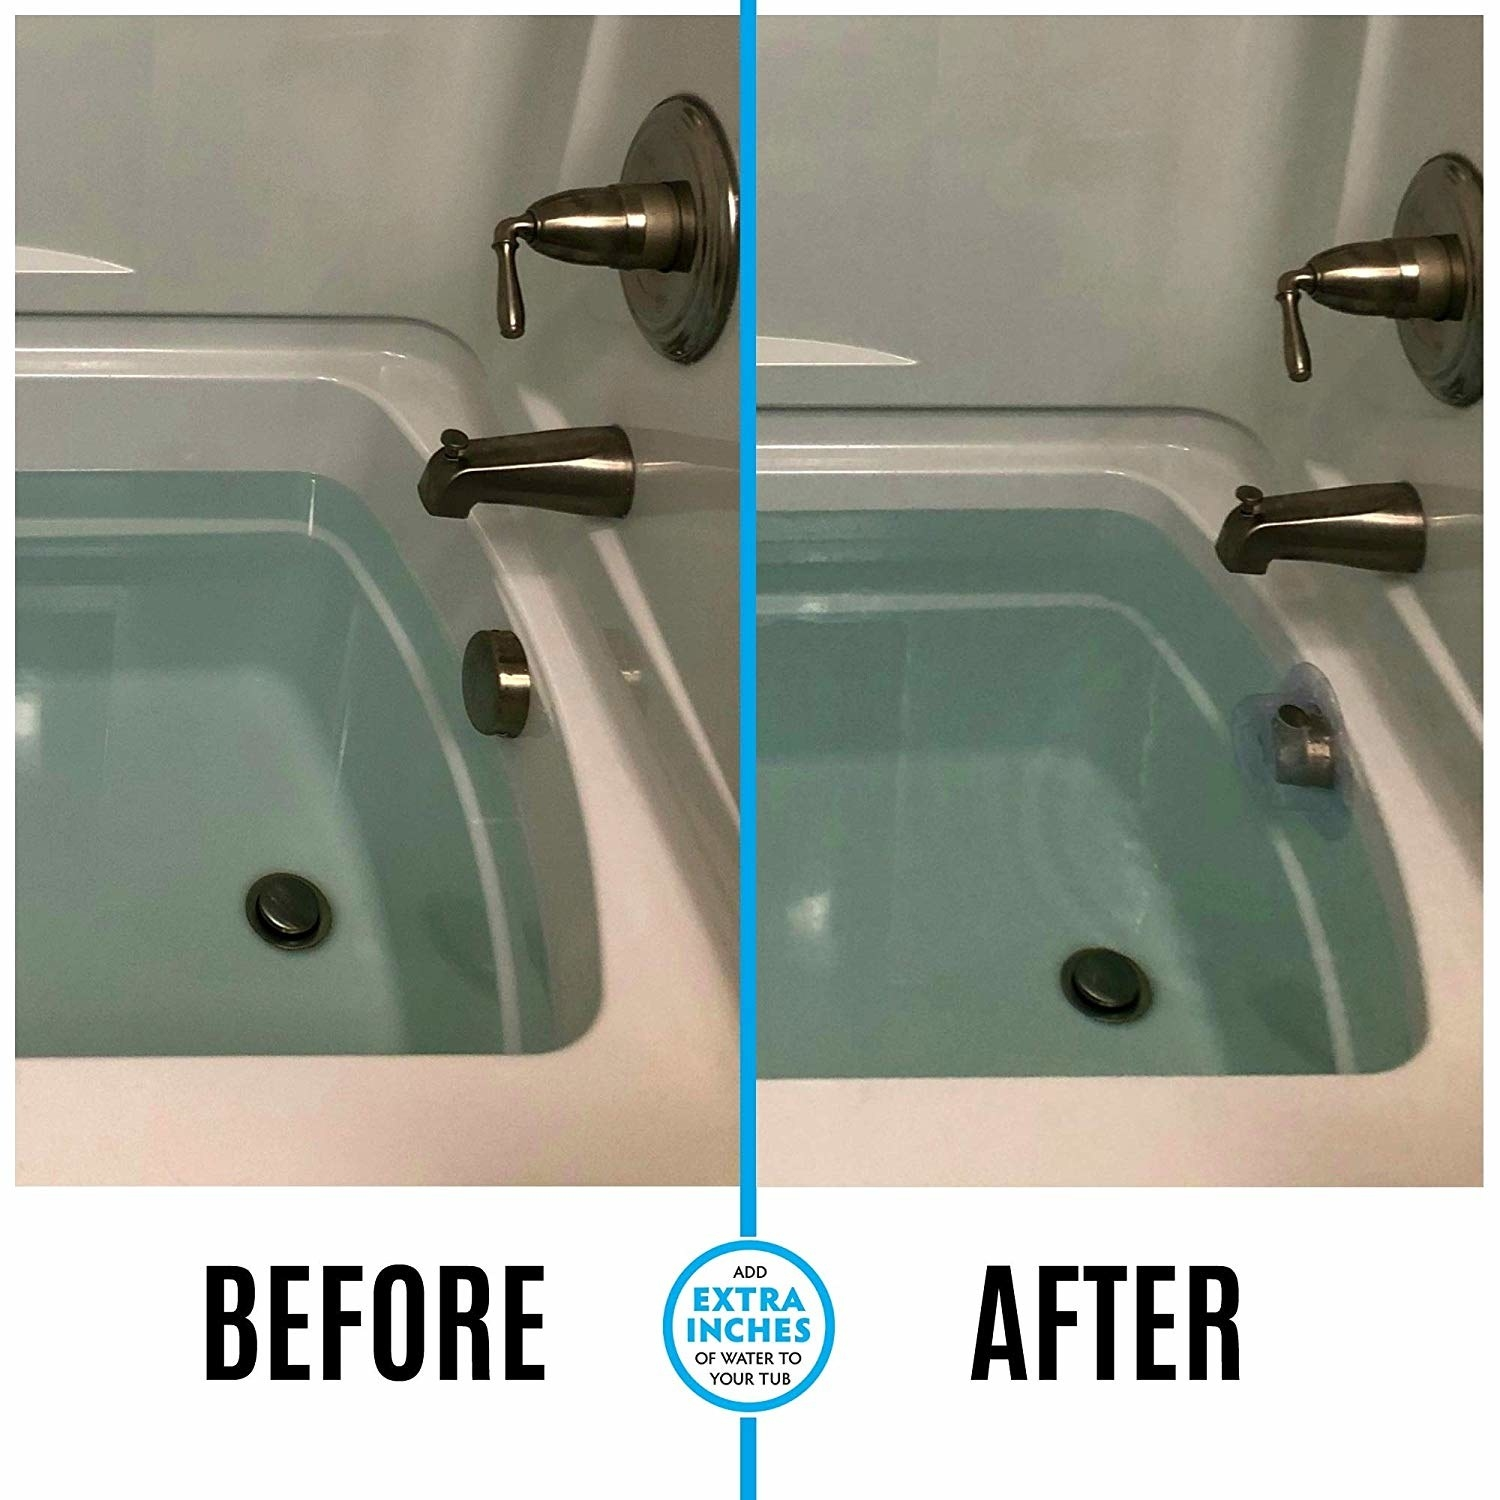 A tub before and after use, with a deeper amount of water after